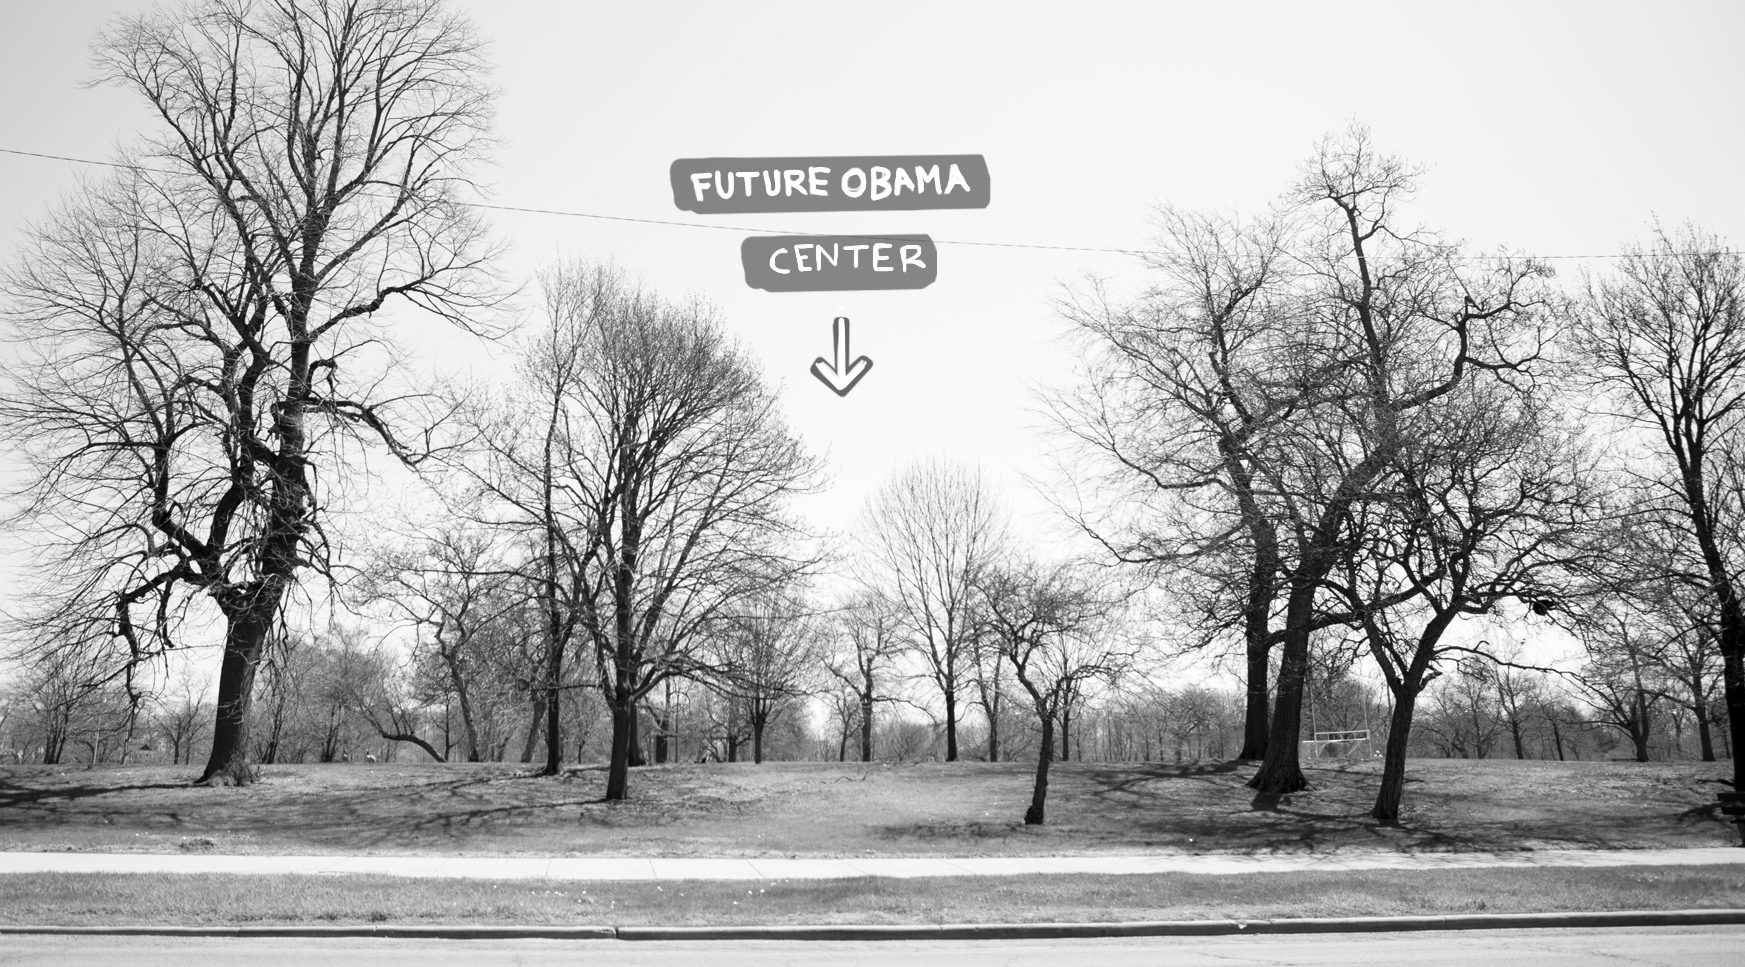 The Obama Presidential Center is expected to be built along Stony Island Avenue in Jackson Park. Plans for the center include a Chicago Public Library branch, museum, and forum building to serve as a public meeting space. (Photo illustration by Paula Friedrich and Andrew Gill/WBEZ)